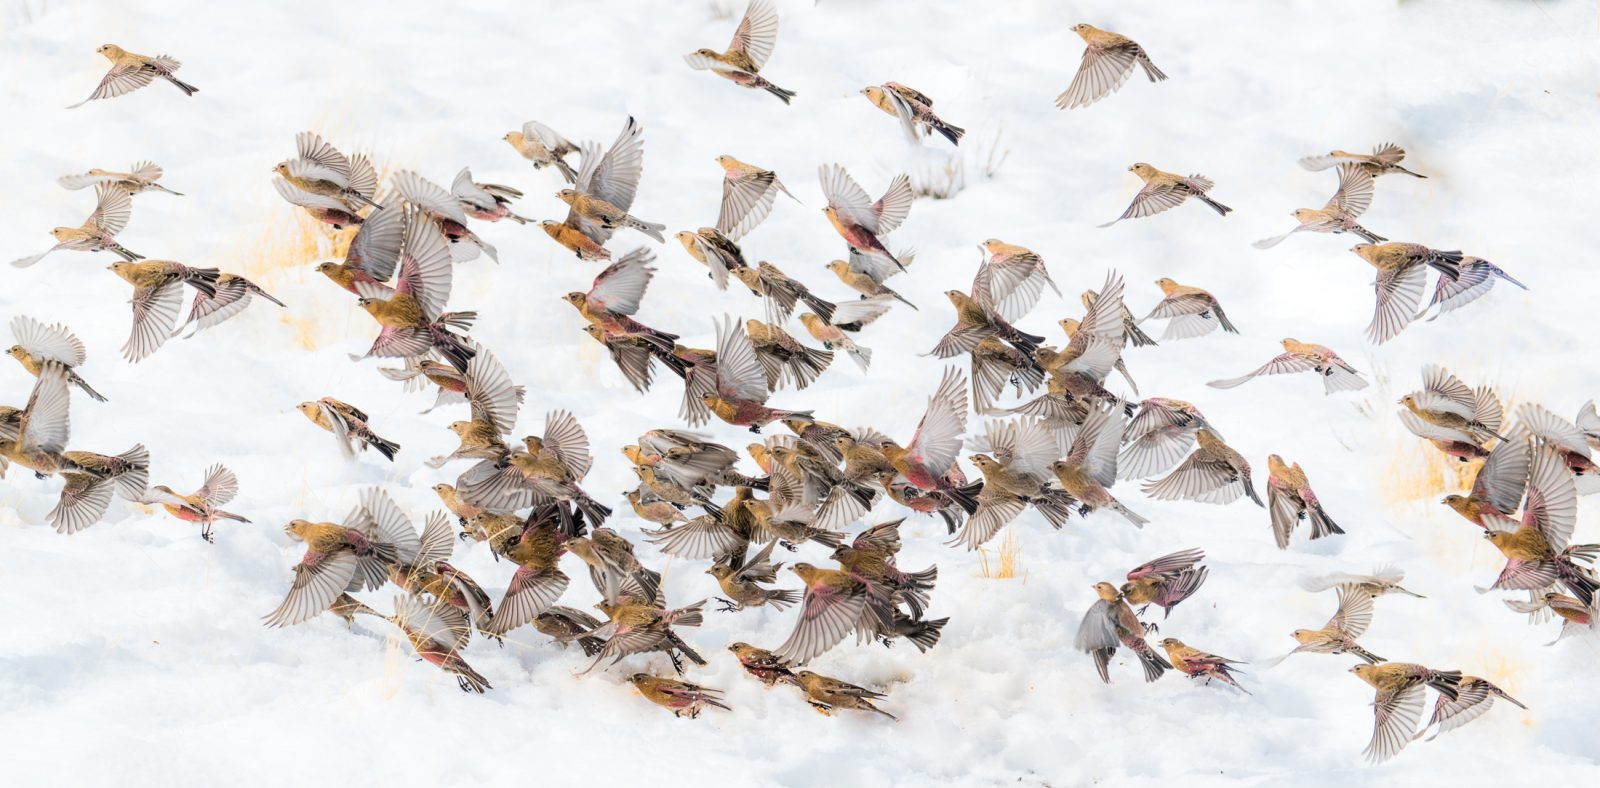 Flock of Finches